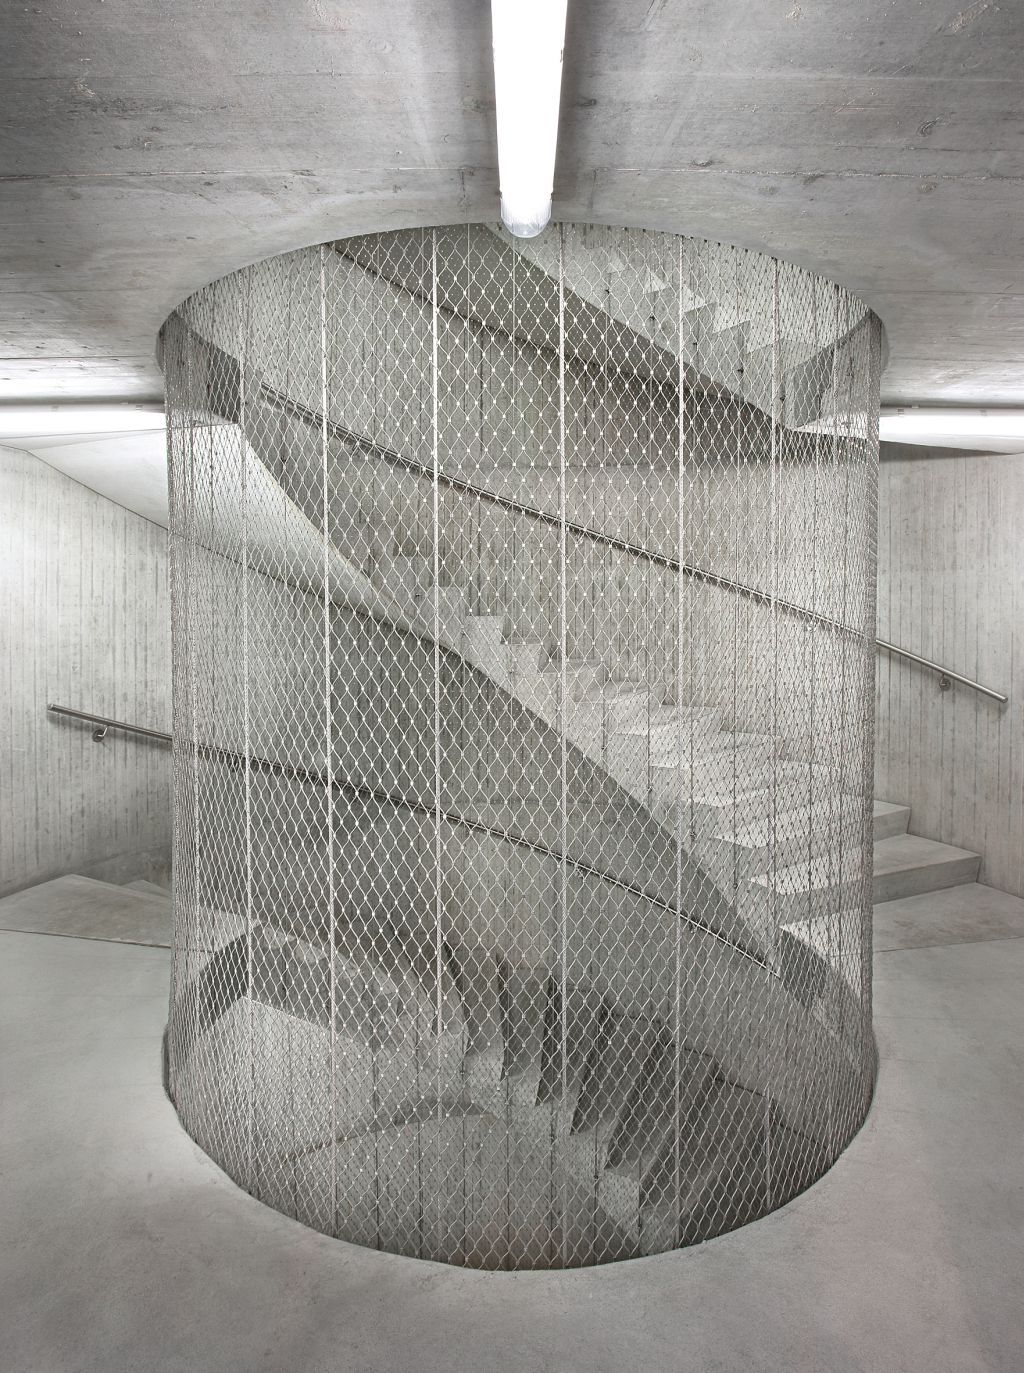 Best Modern Look For Building Staircase In 2020 With Images 400 x 300